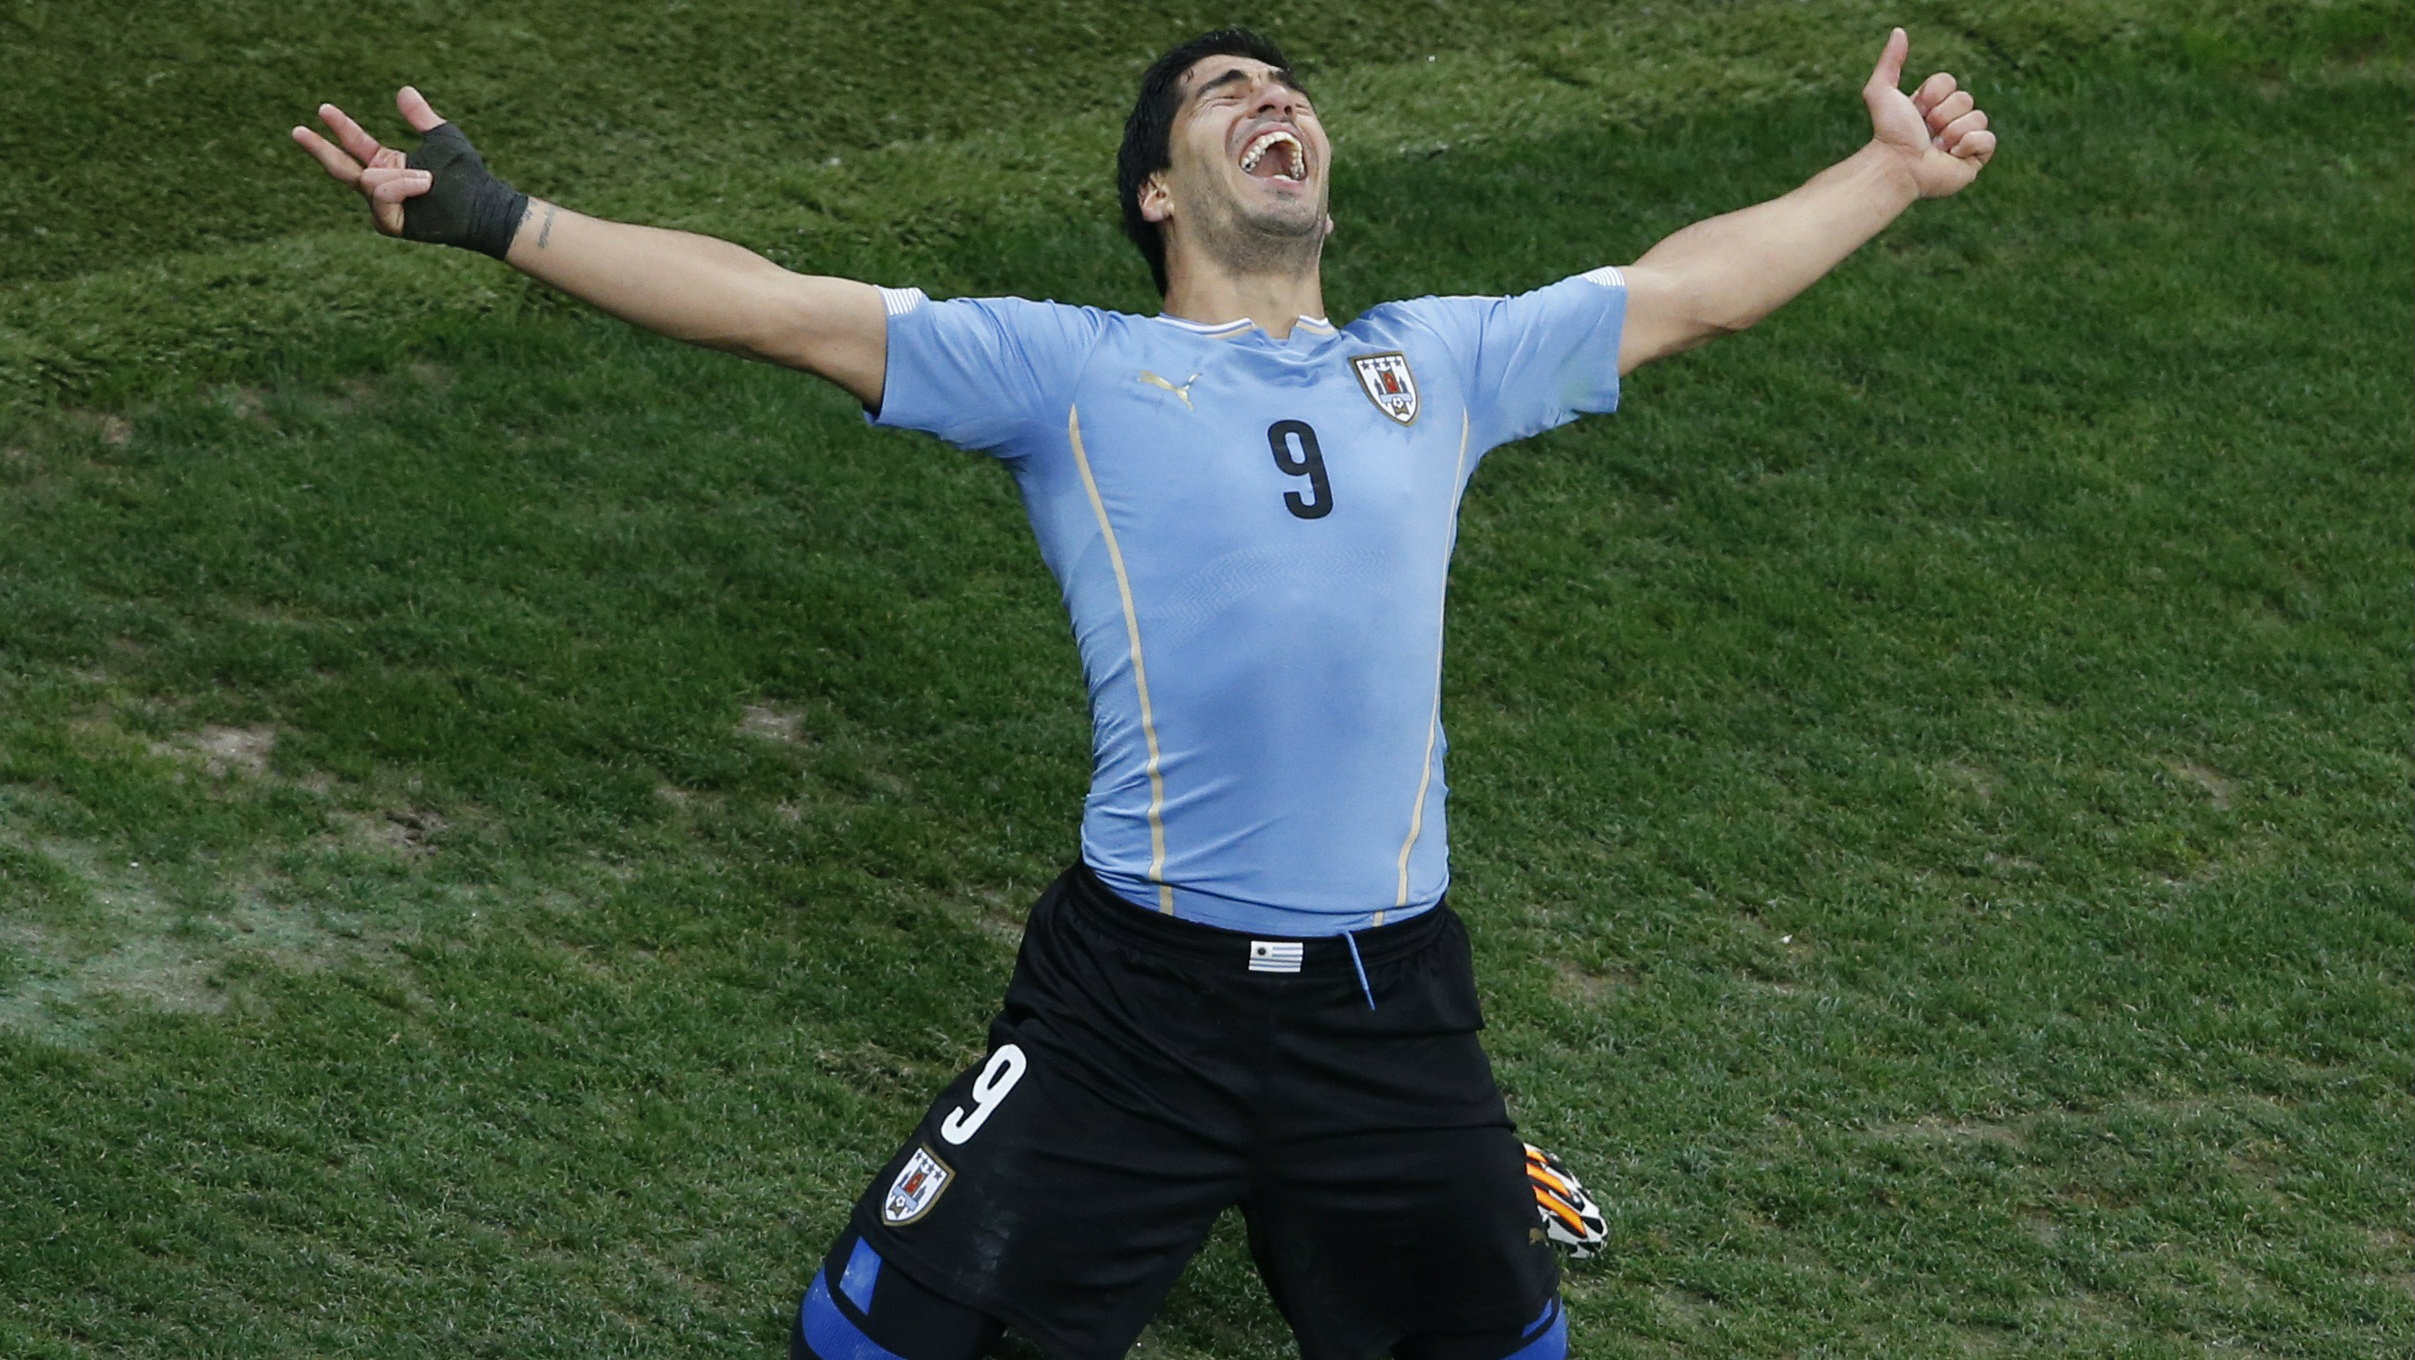 Uruguay's Luis Suarez celebrates scoring his team's second goal against England during their 2014 World Cup Group D soccer match.